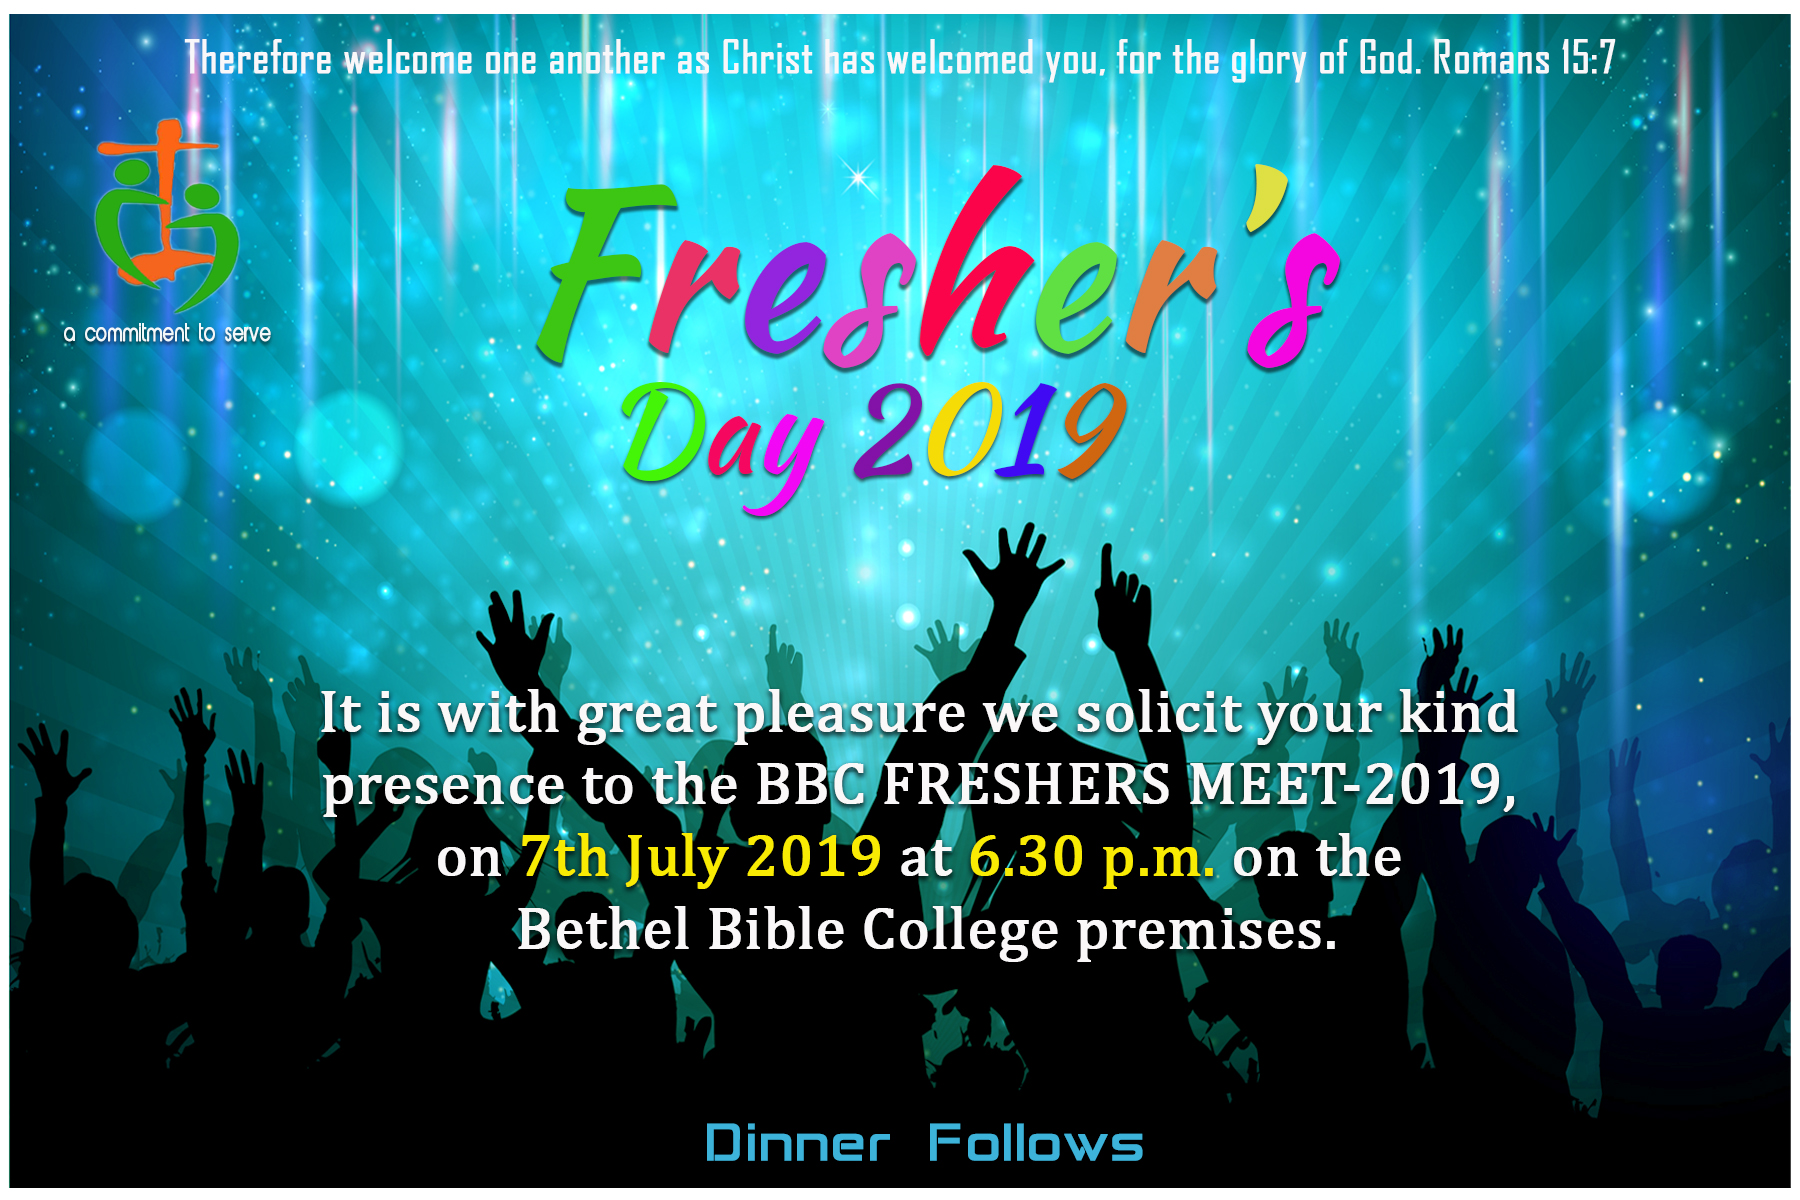 Freshers Day 2019